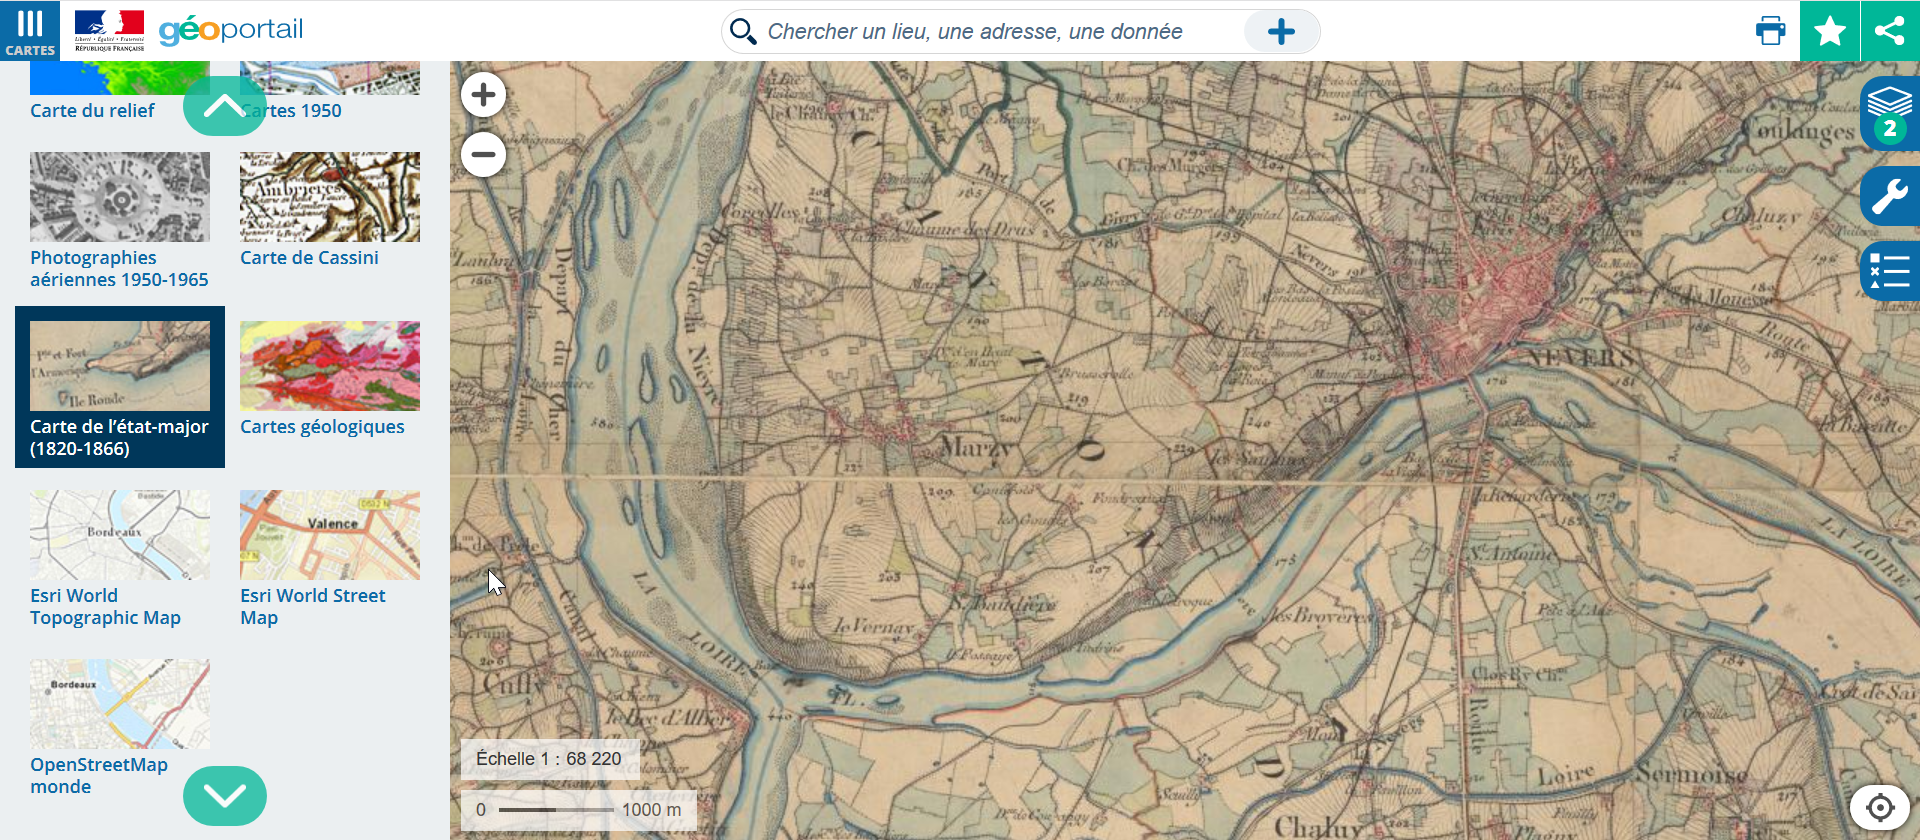 Exploring the 19th century survey map on the Geoportail website